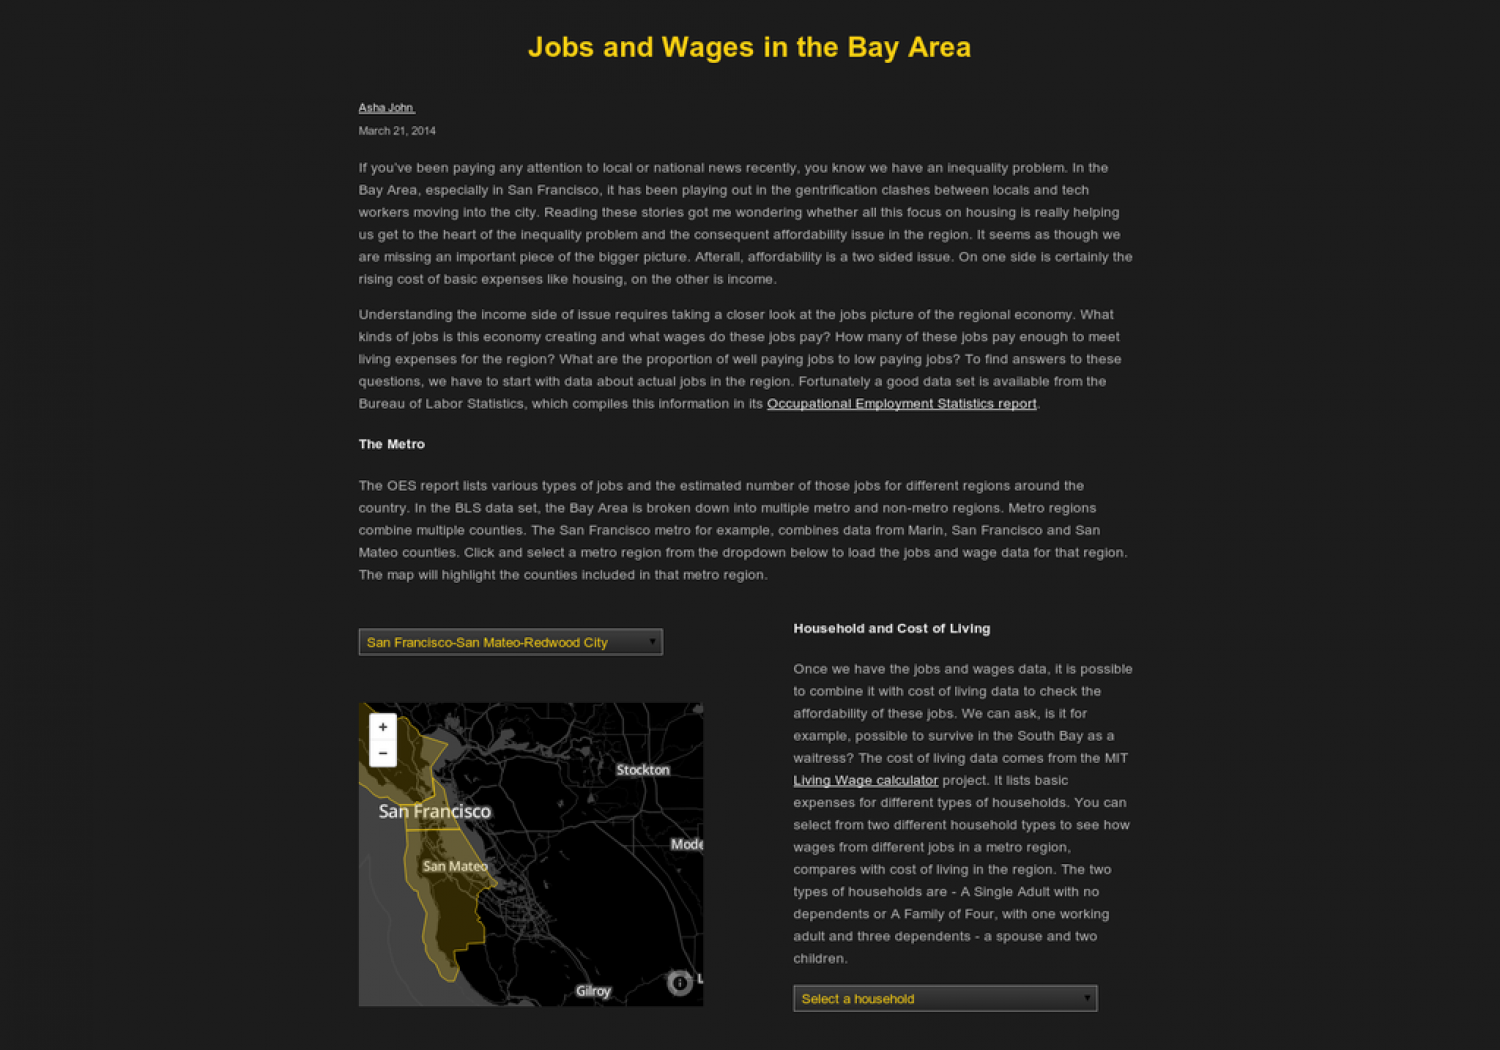 Jobs and Wages in the Bay Area Infographic